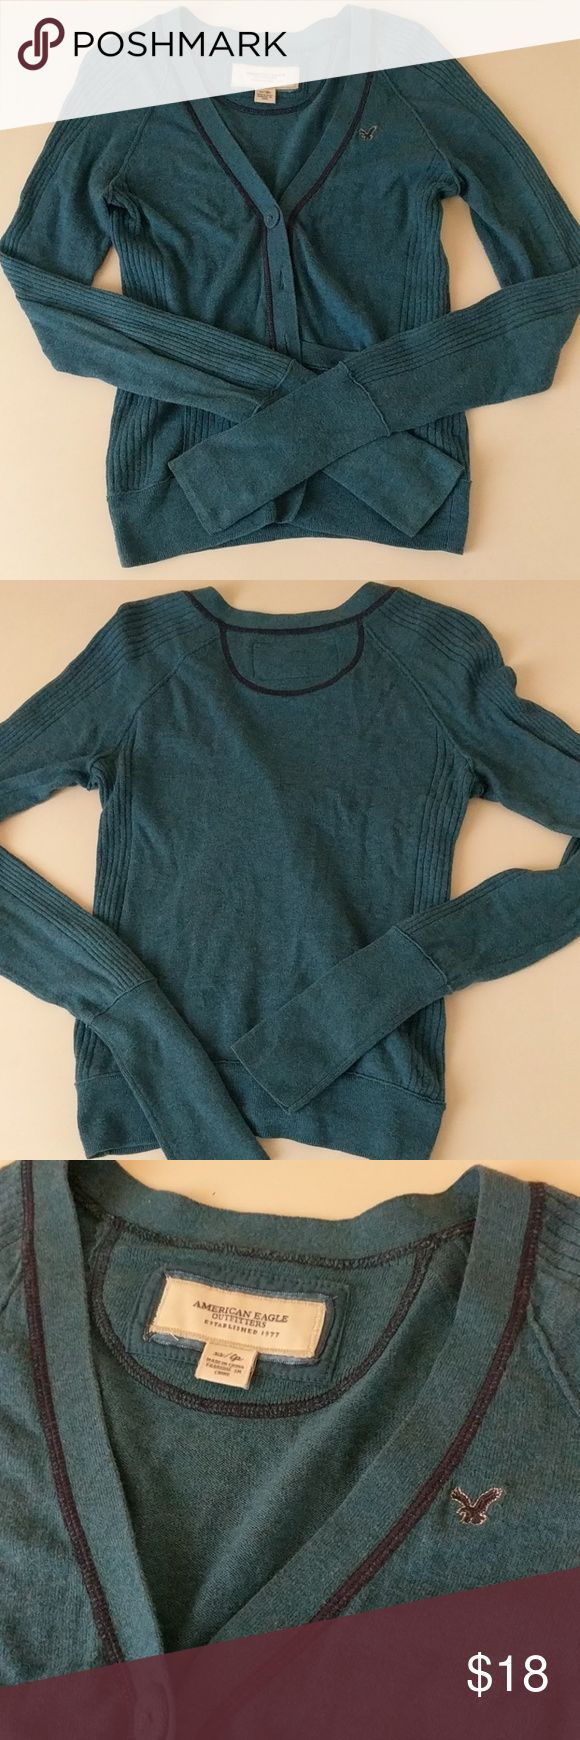 American Eagle Turquoise Knit Button Down Cardigan American Eagle turquoise knit cardigan. Nice for work or casual wear. Gently used. AE runs small so check their sizes online!  Wardrobe must-have! Bundle with other cardigans for a STEEP discount!  American Eagle Outfitters Sweaters Cardigans